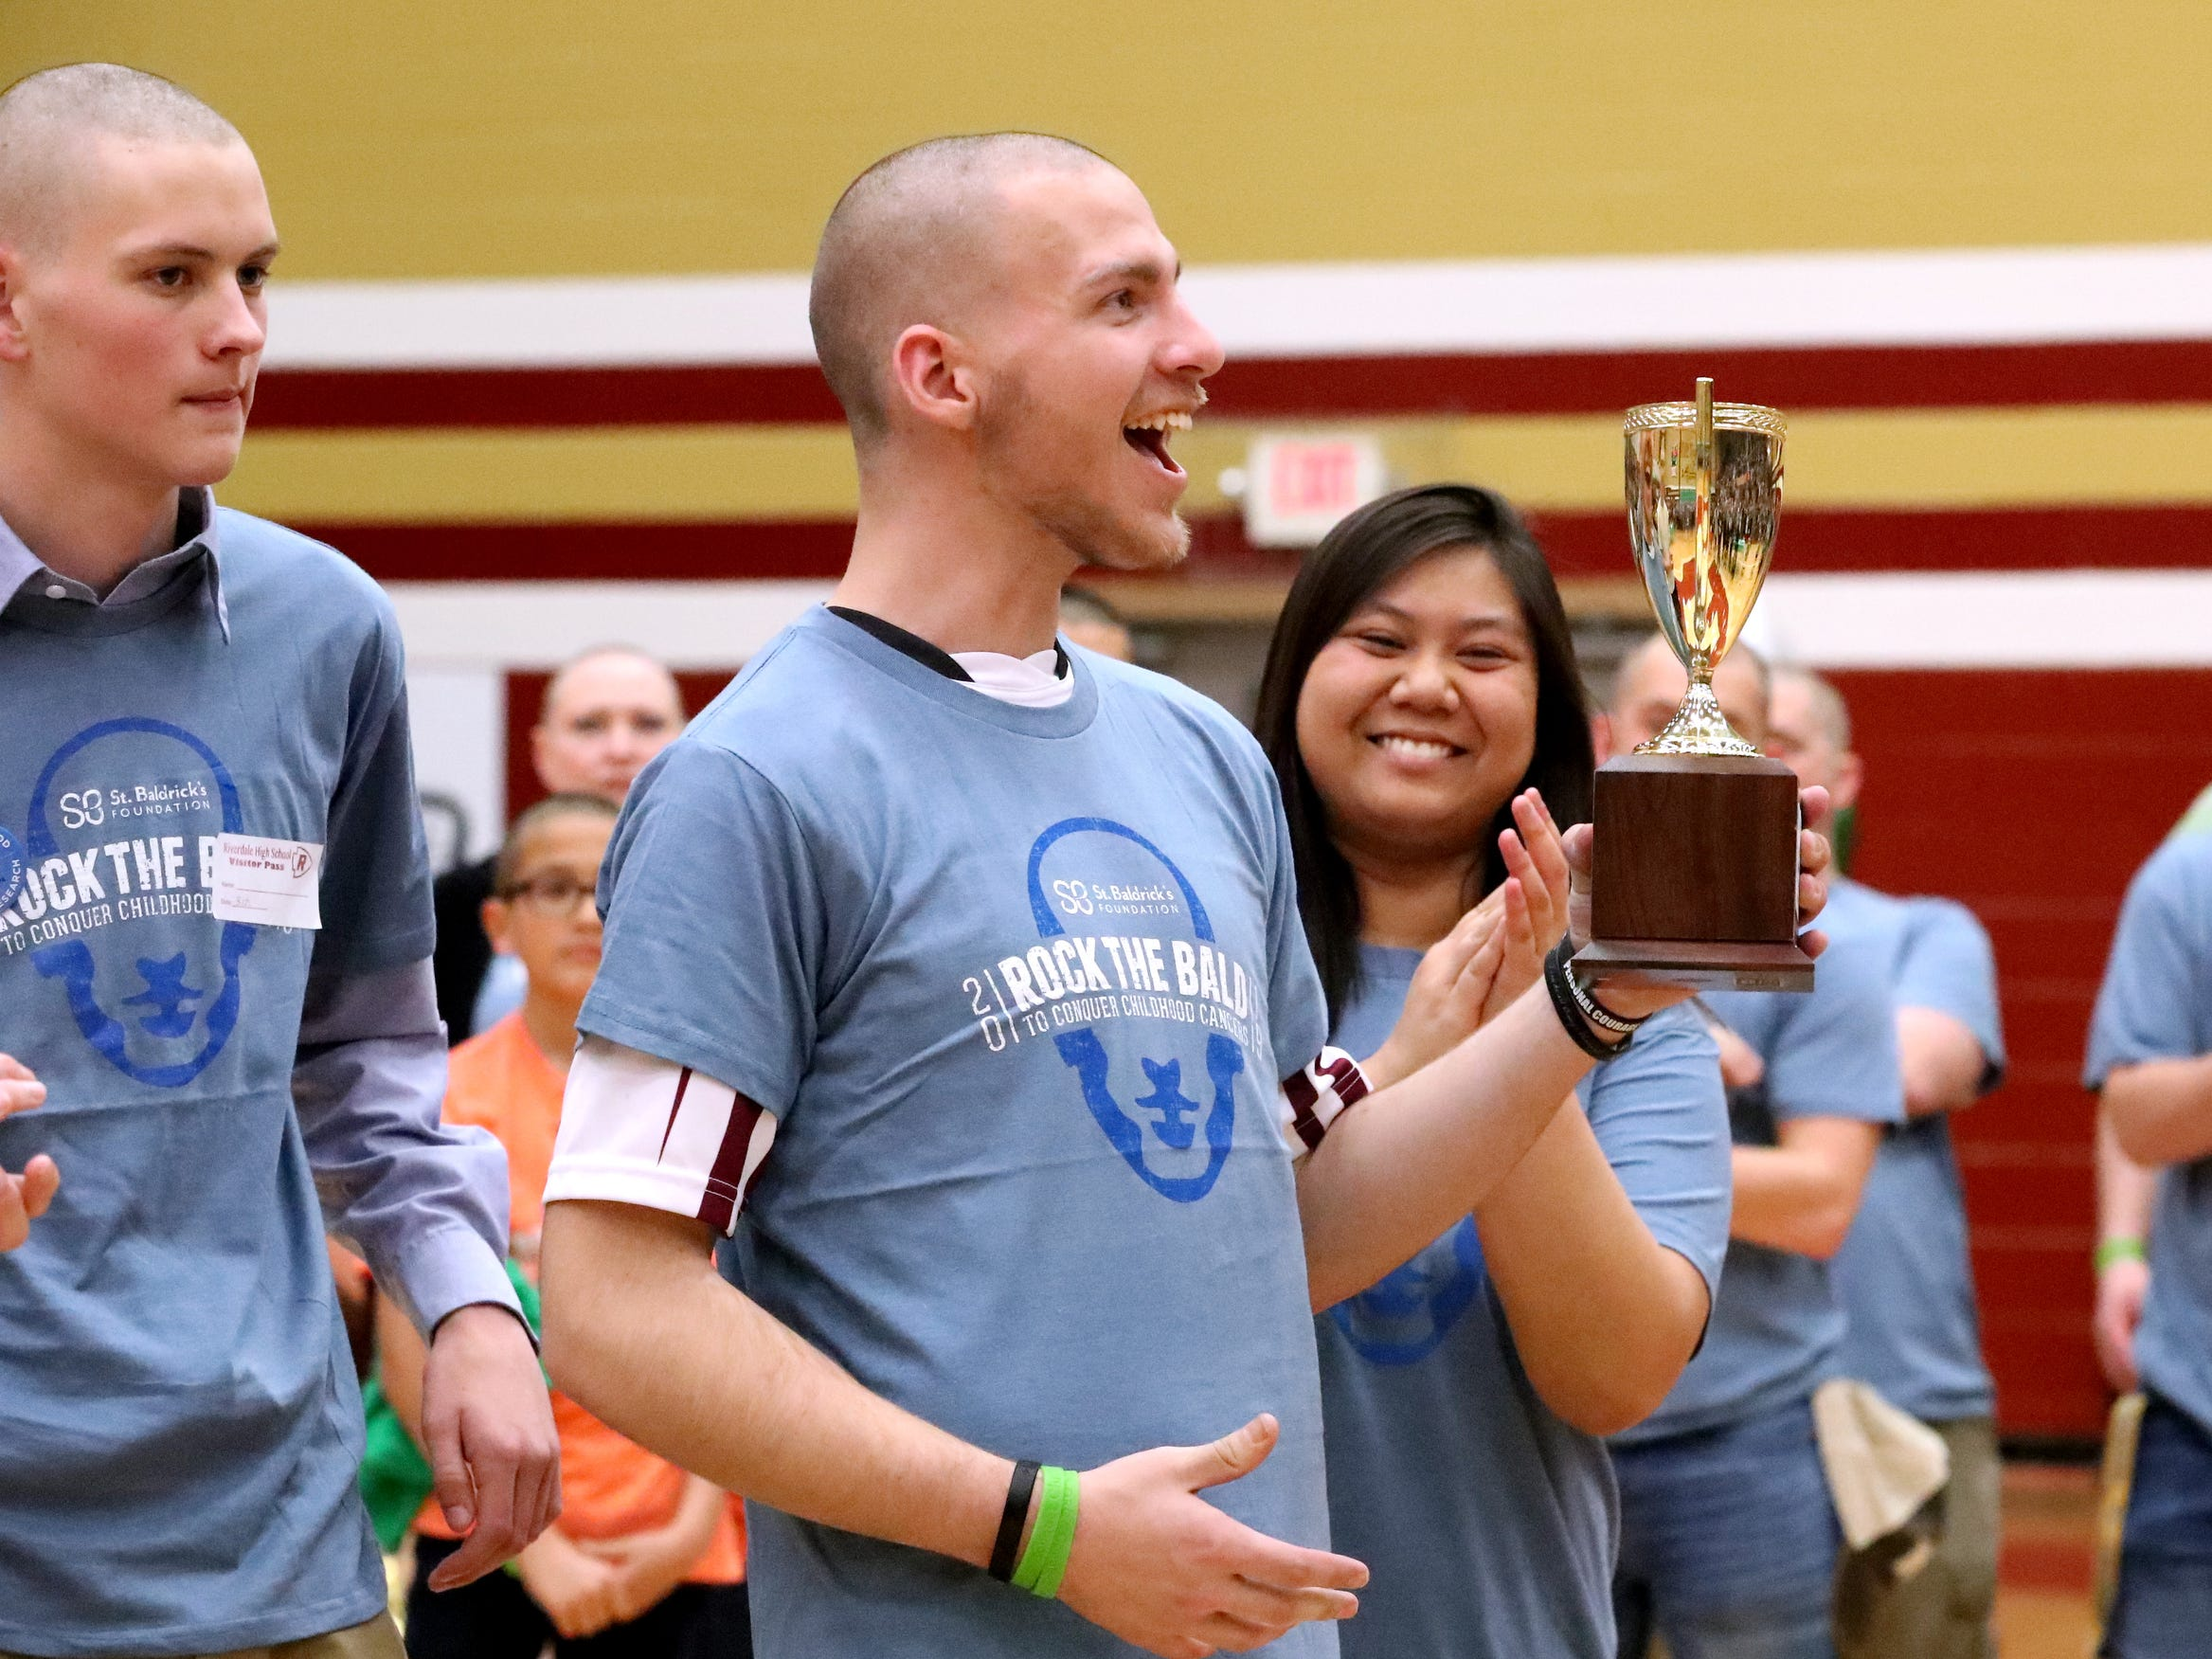 Caleb Shew and his team raised the most money during the Riverdale High School's sixth annual Brave the Shave fundraiser to benefit St. Baldrick's Foundation on Thursday, March 21, 2019. The organization raises funds and awareness for childhood cancer.